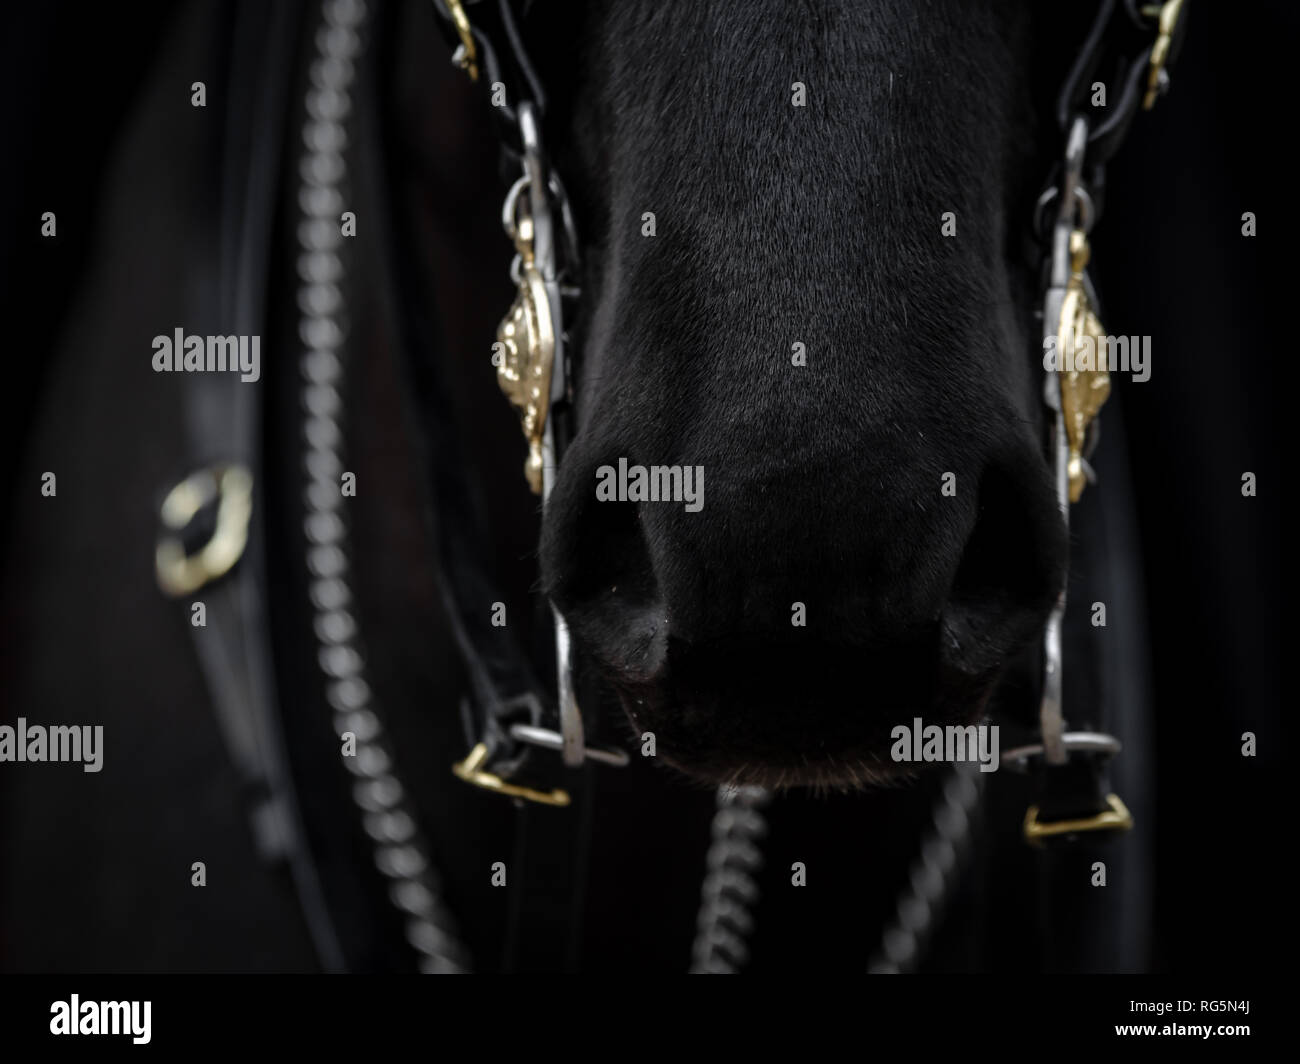 The soft muzzle of the queens horse at the Royal horse guards palace Stock Photo